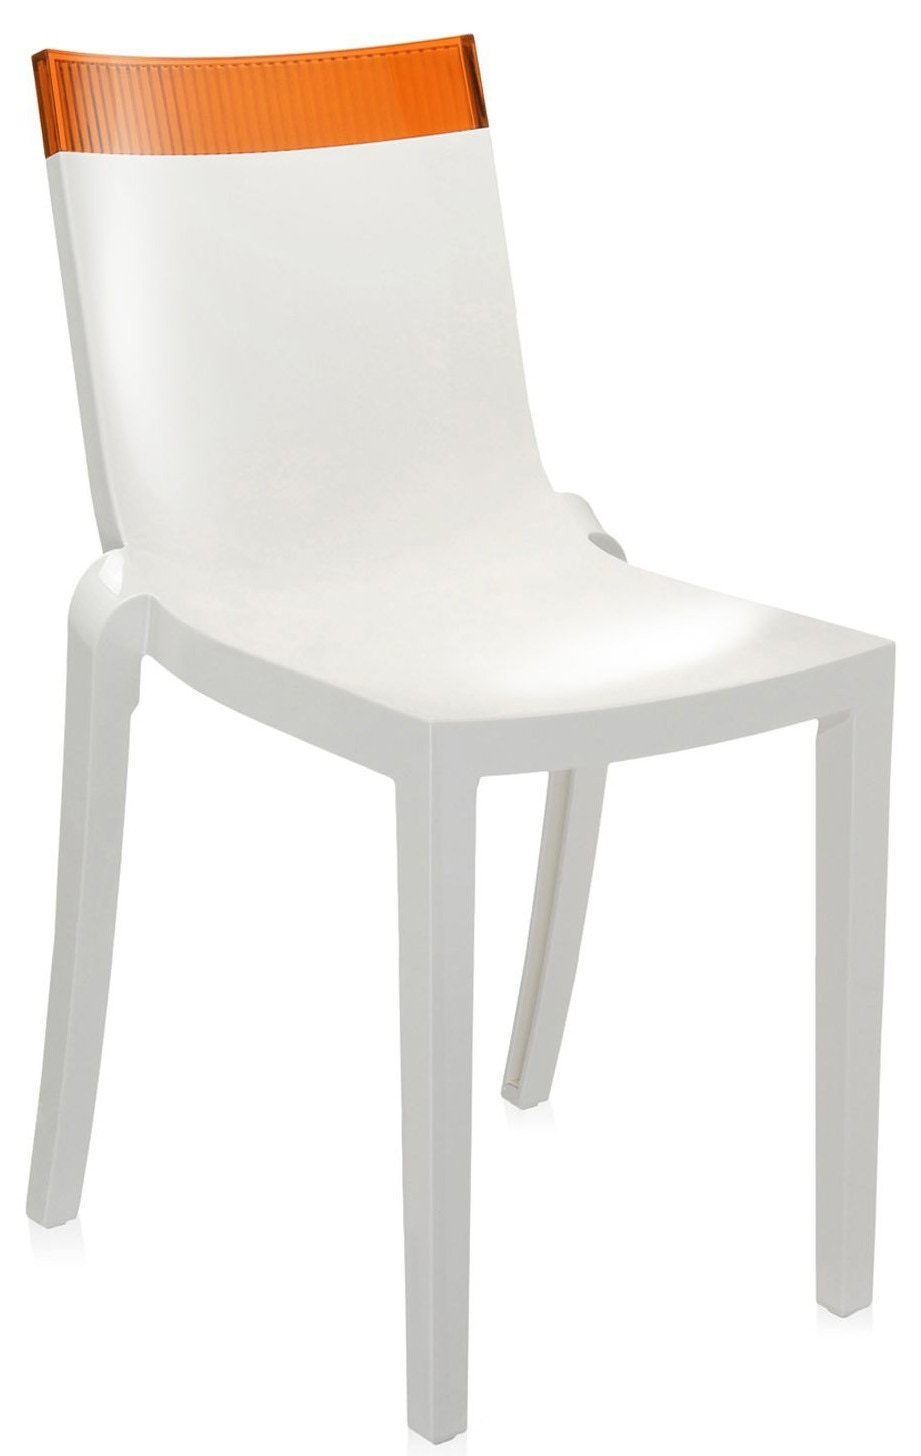 Kartell Hi-Cut Chair (Priced Each, Sold in Sets of 2)